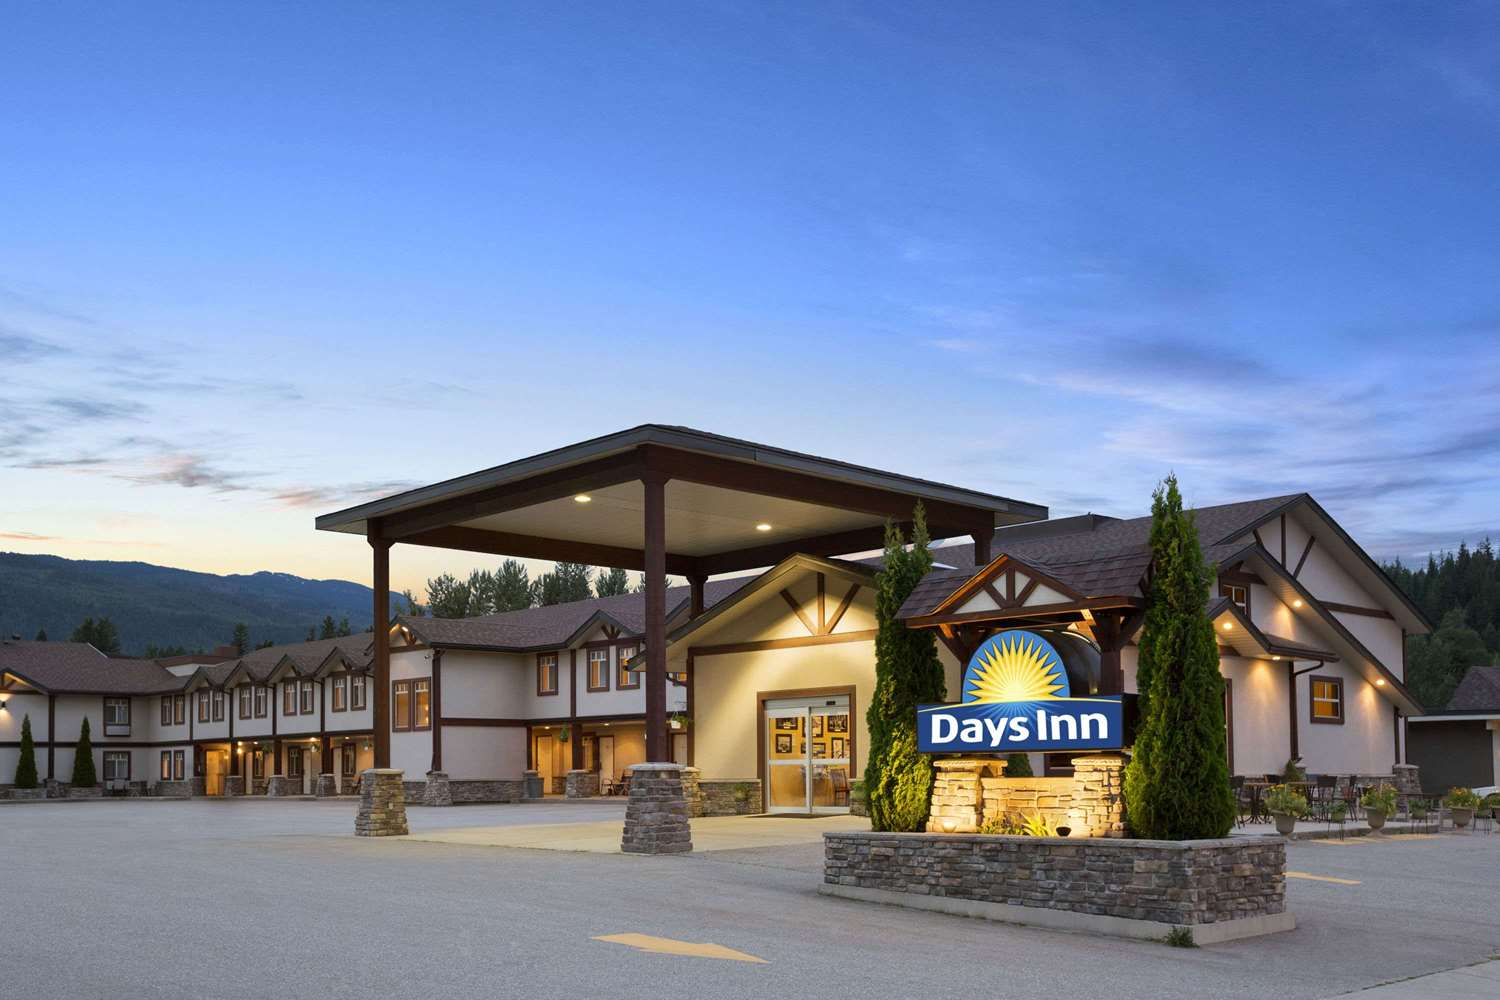 Exterior View Days Inn Revelstoke